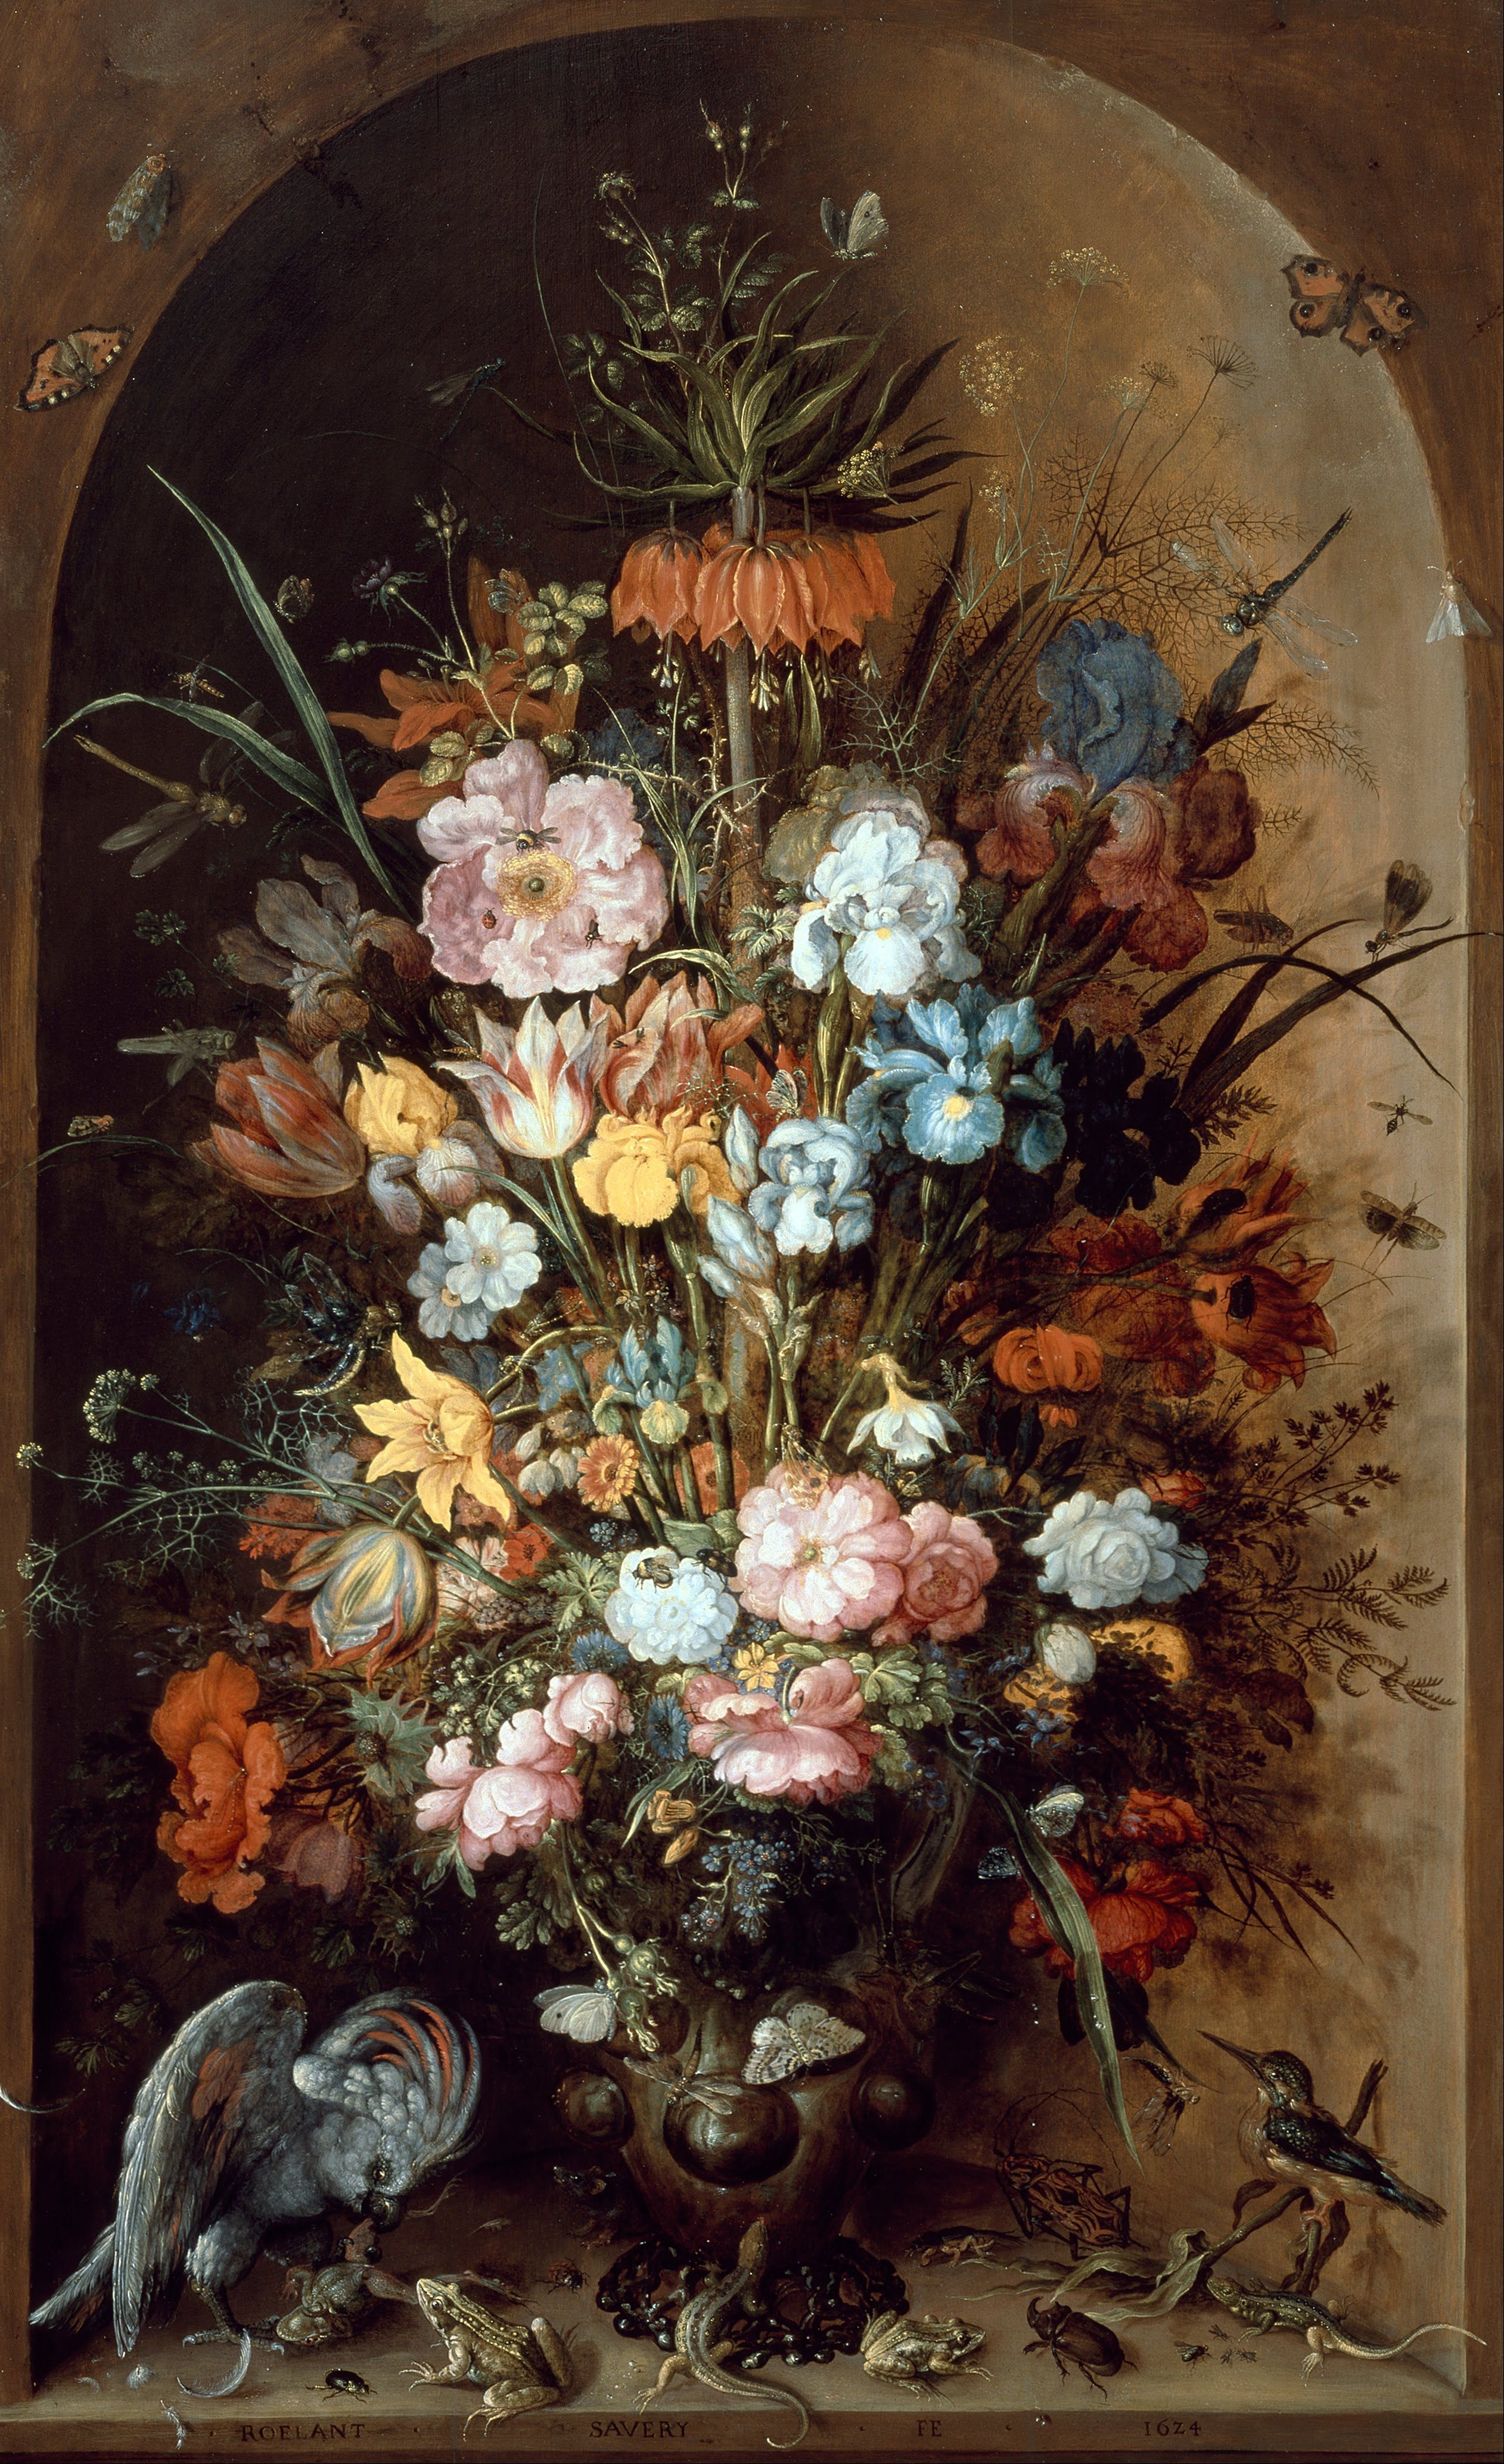 Roelandt Savery (1576-1639), Large flower still life with Crown Imperial, 1624, Centraal Museum Utrecht